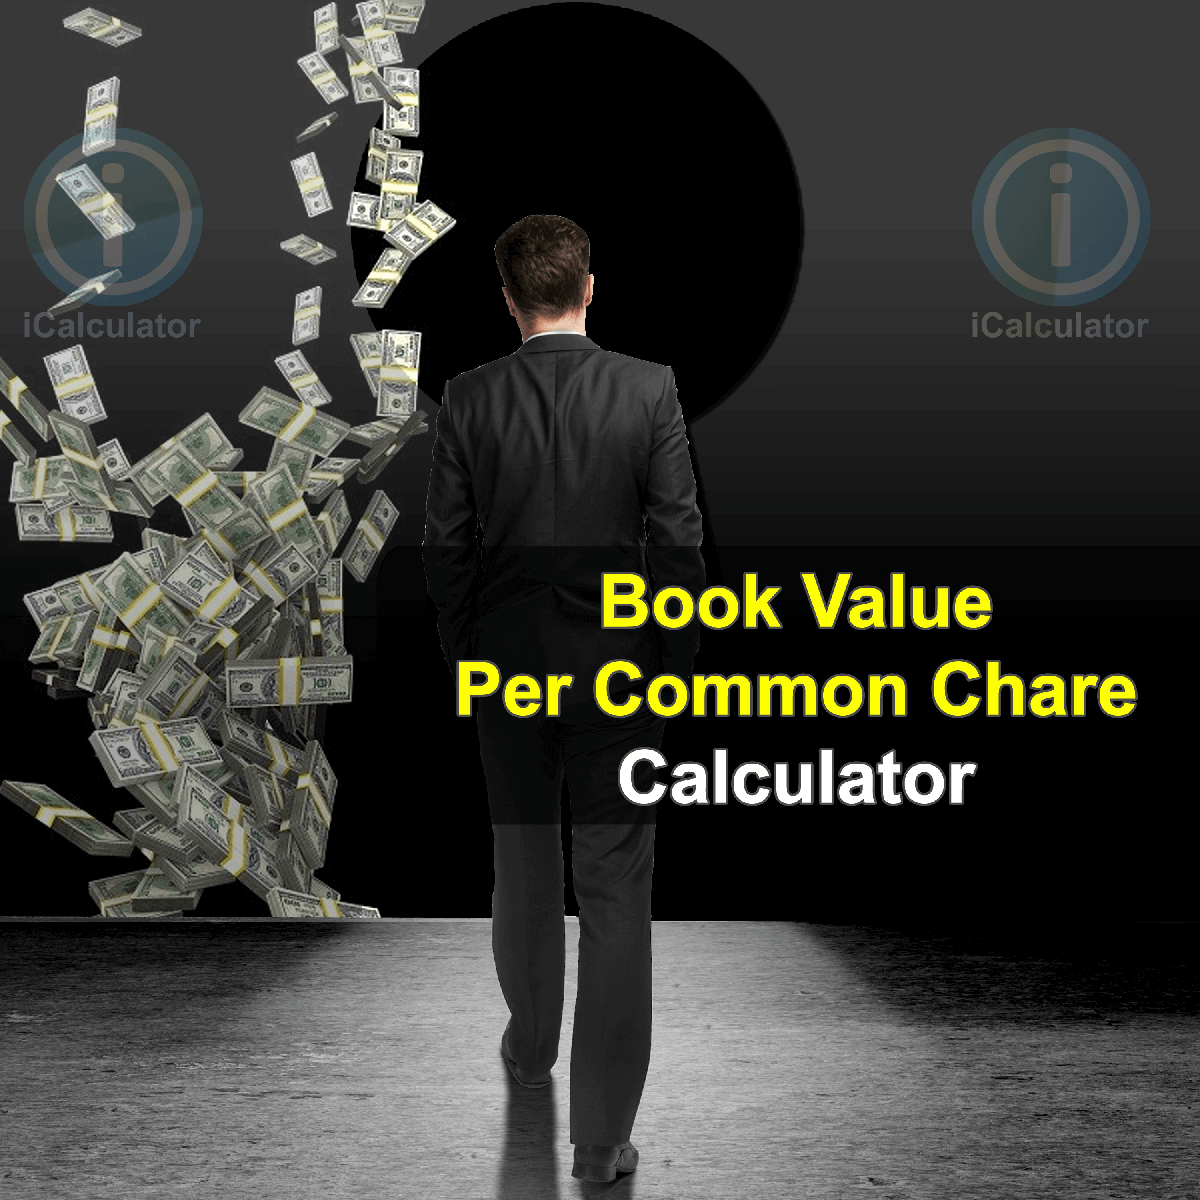 Book Value Per Common Share Ratio Calculator. This image provides details of how to calculate Book Value Per Common Share Ratio using a calculator and notepad. By using the Book Value Per Common Share Ratio formula, the Book Value Per Common Share Ratio Calculator provides a true calculation of the per share value of a company's stock based on common shareholder's equity in the company